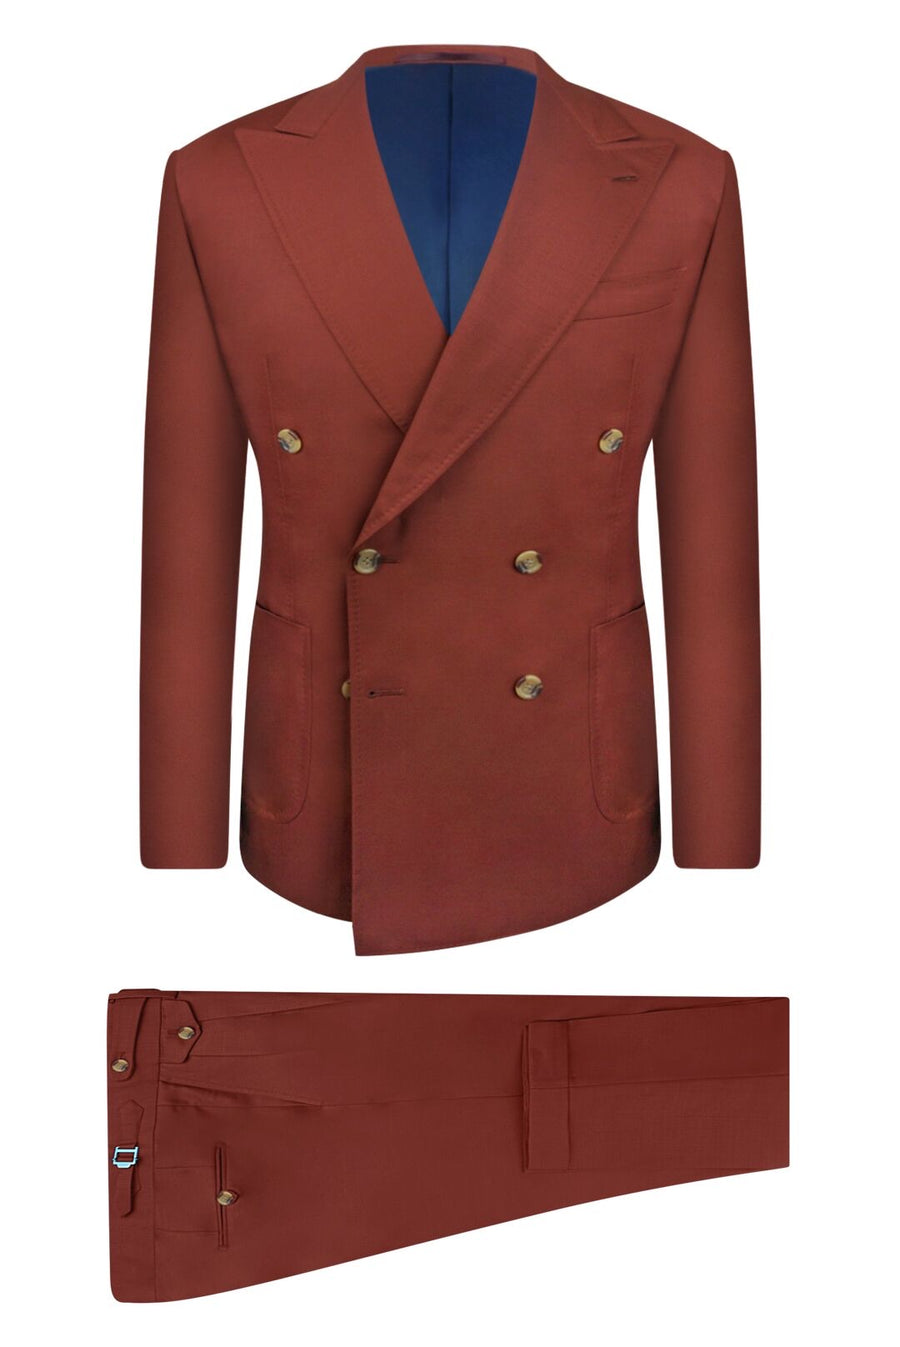 Burnt Sienna Double Breasted Suit Jacket